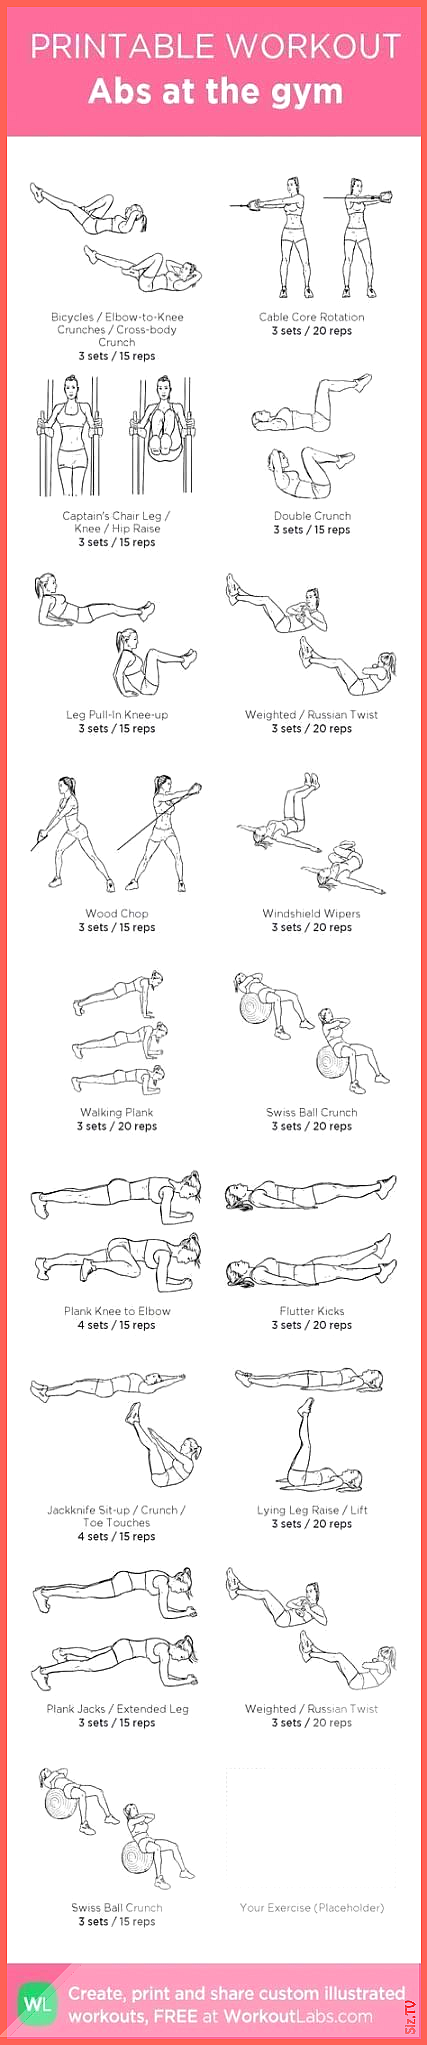 Beste Fitness-Workouts f r Teenager Abs Awesome Ideas Abs Awesome Beste FitnessWorkouts  Beste Fitne...